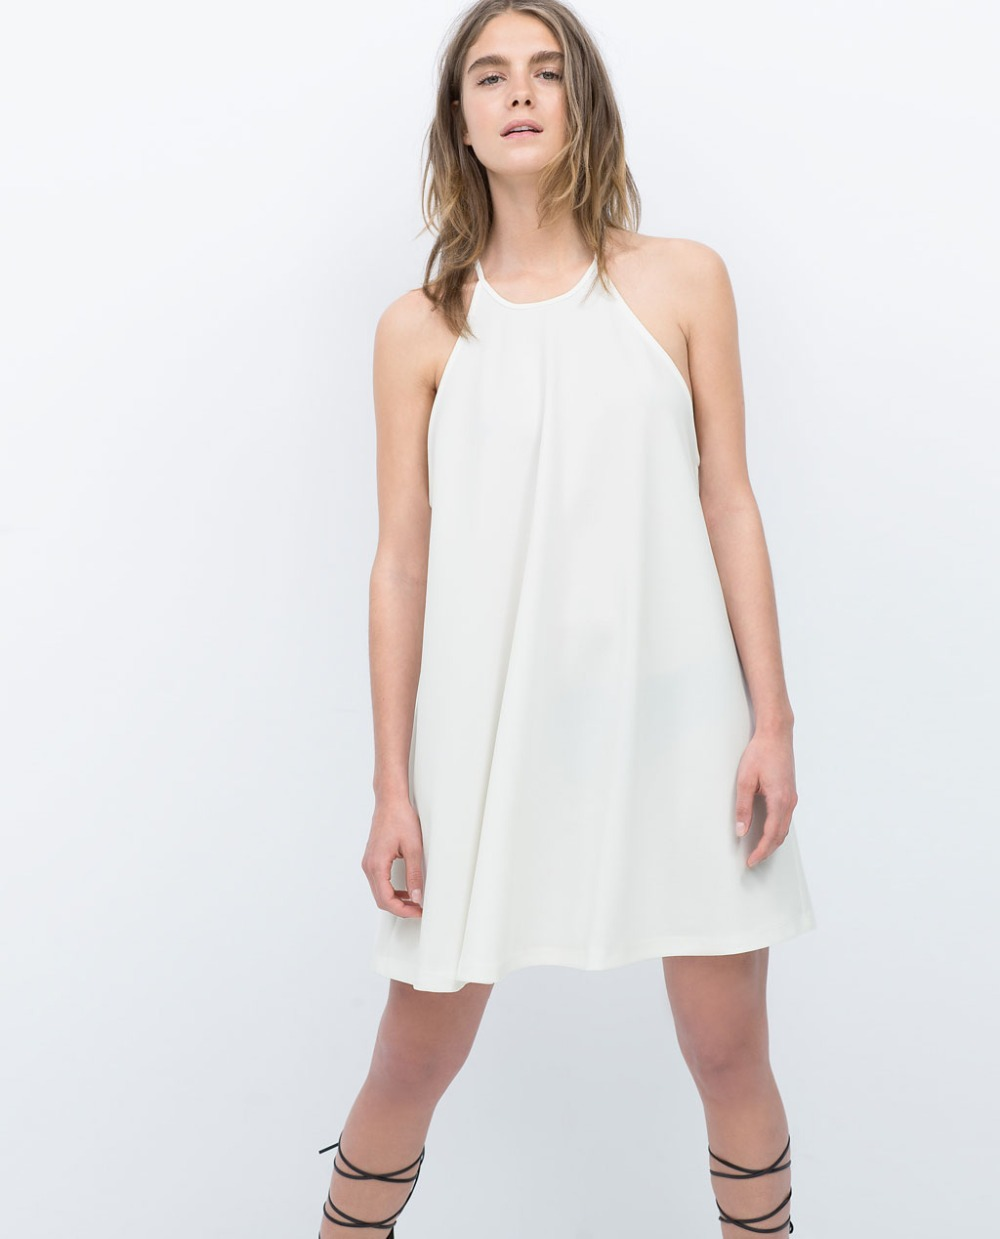 White Spaghetti Strap Summer Dress